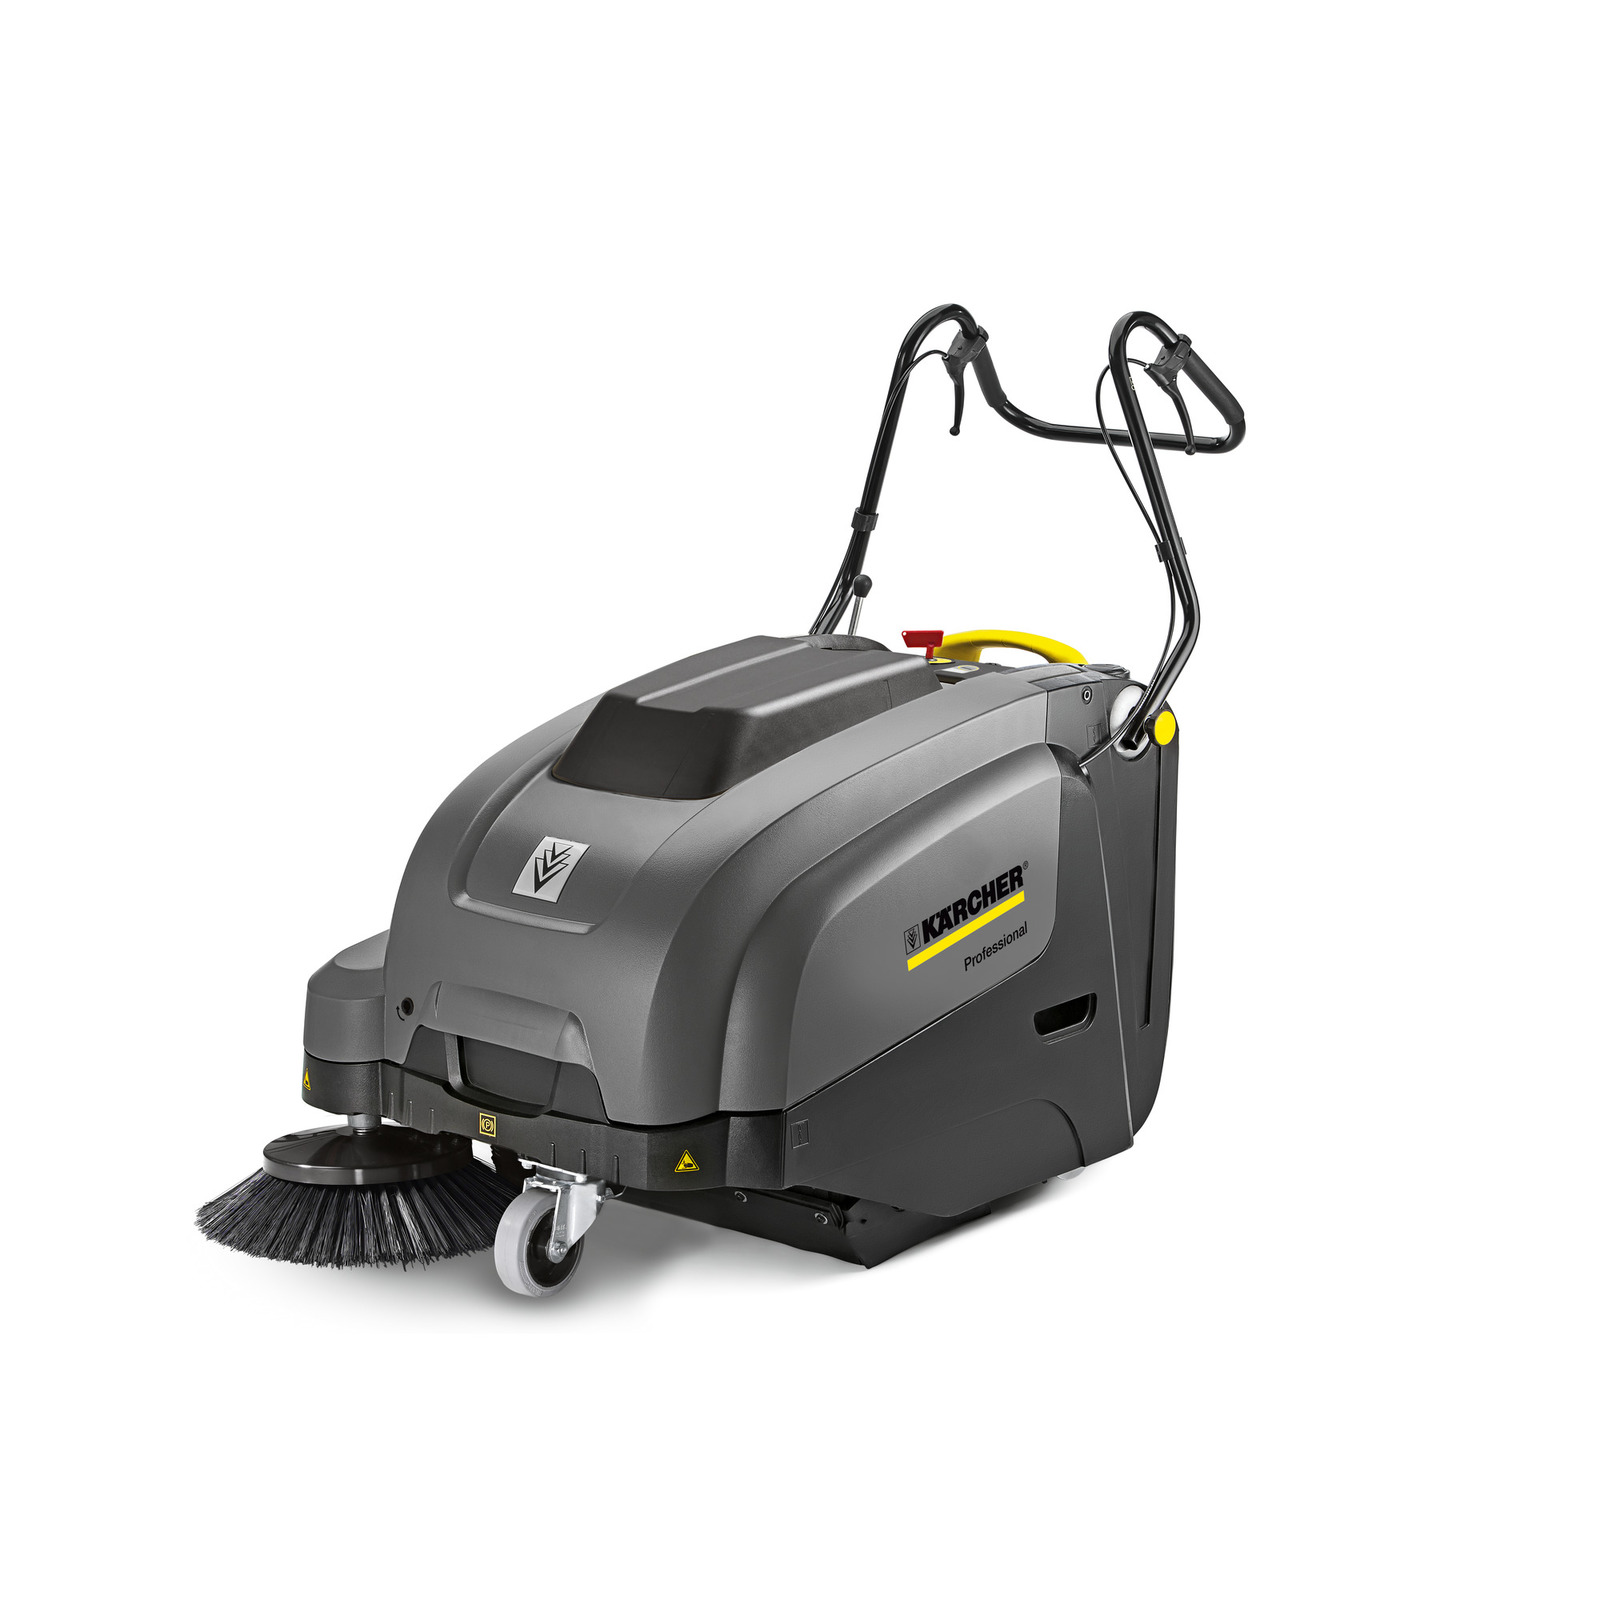 Метачна машина Karcher KM 75/40 W Bp Pack